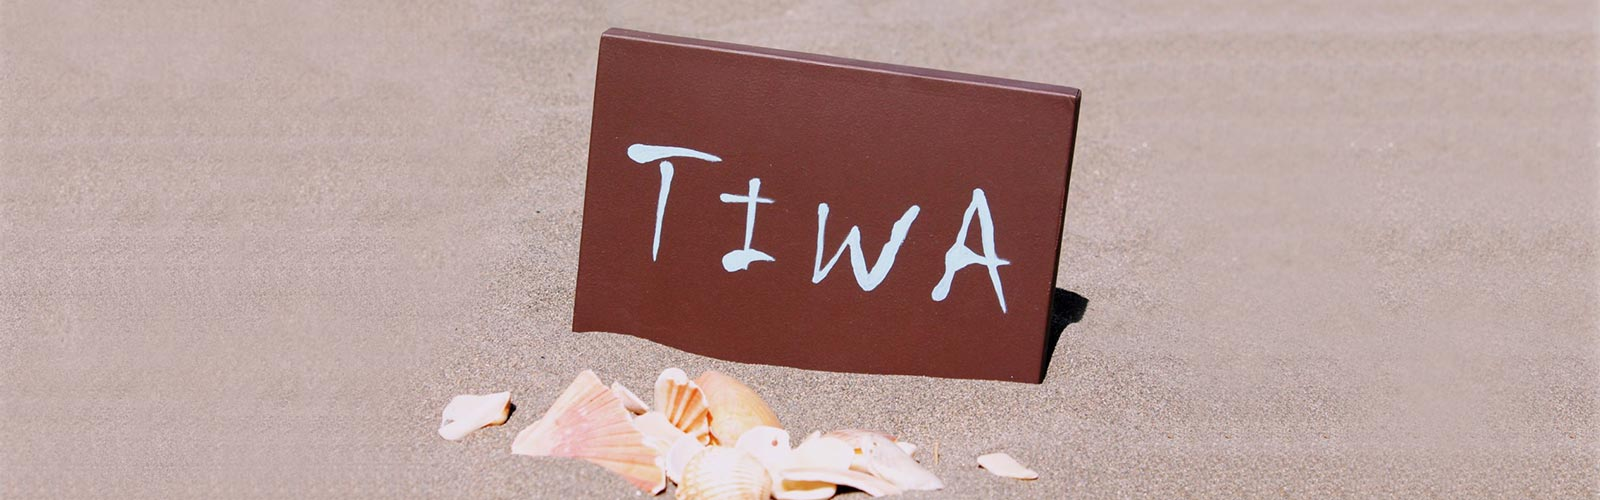 Gafas tiwa banner contact